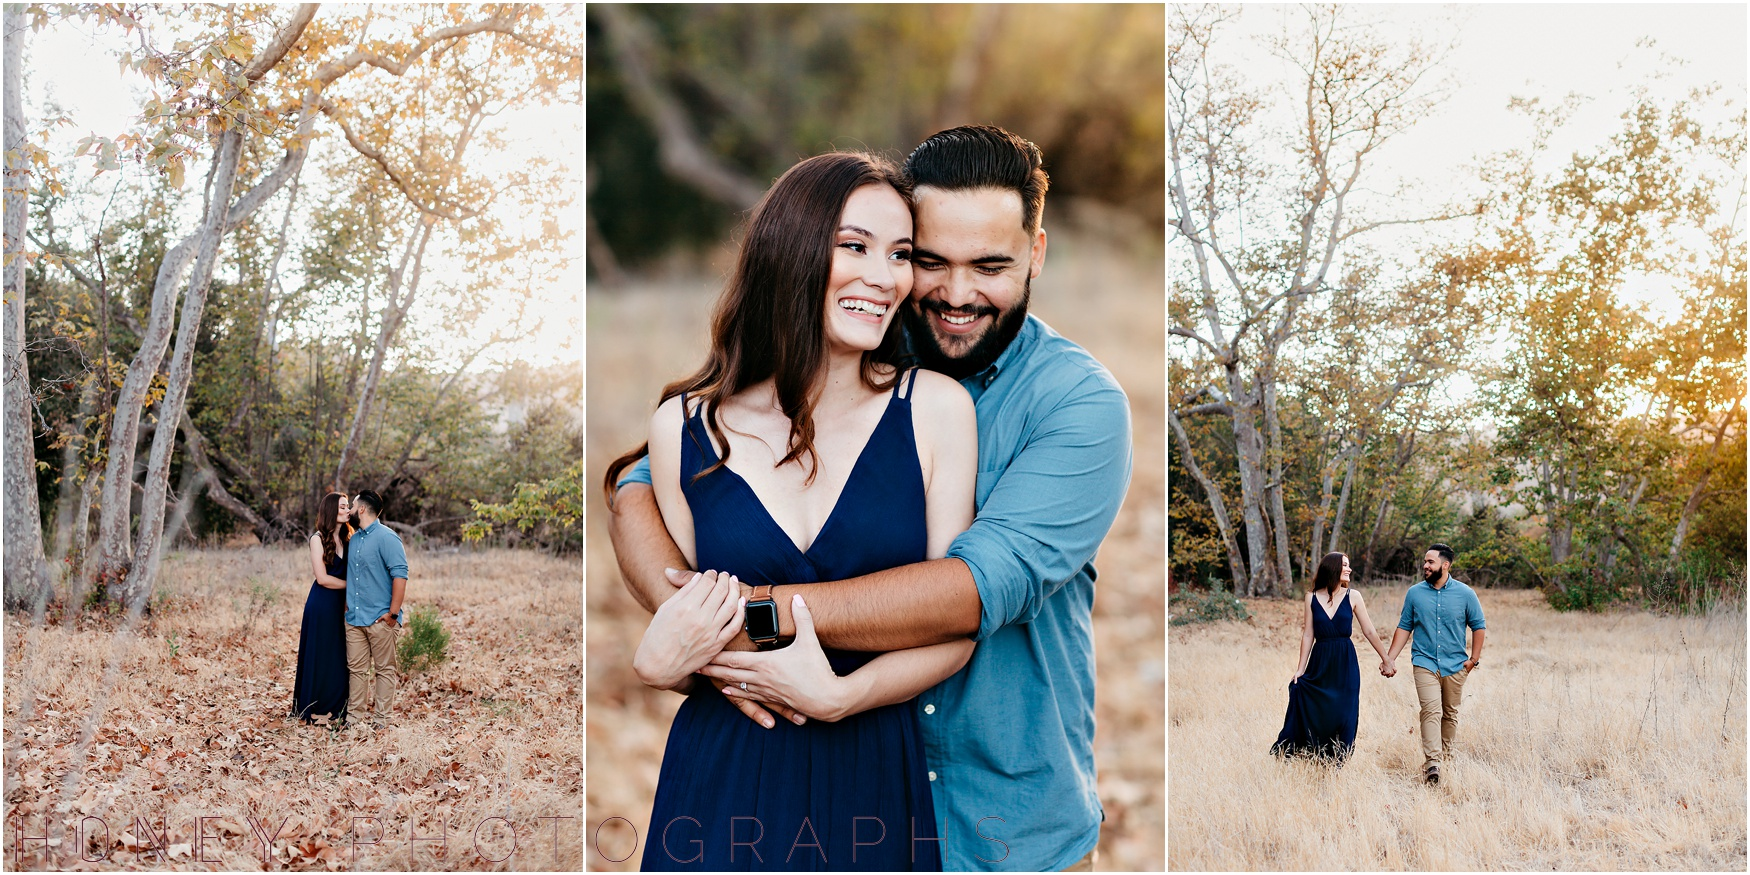 marian_bear_sunset_woods_san_diego_engagement023.jpg